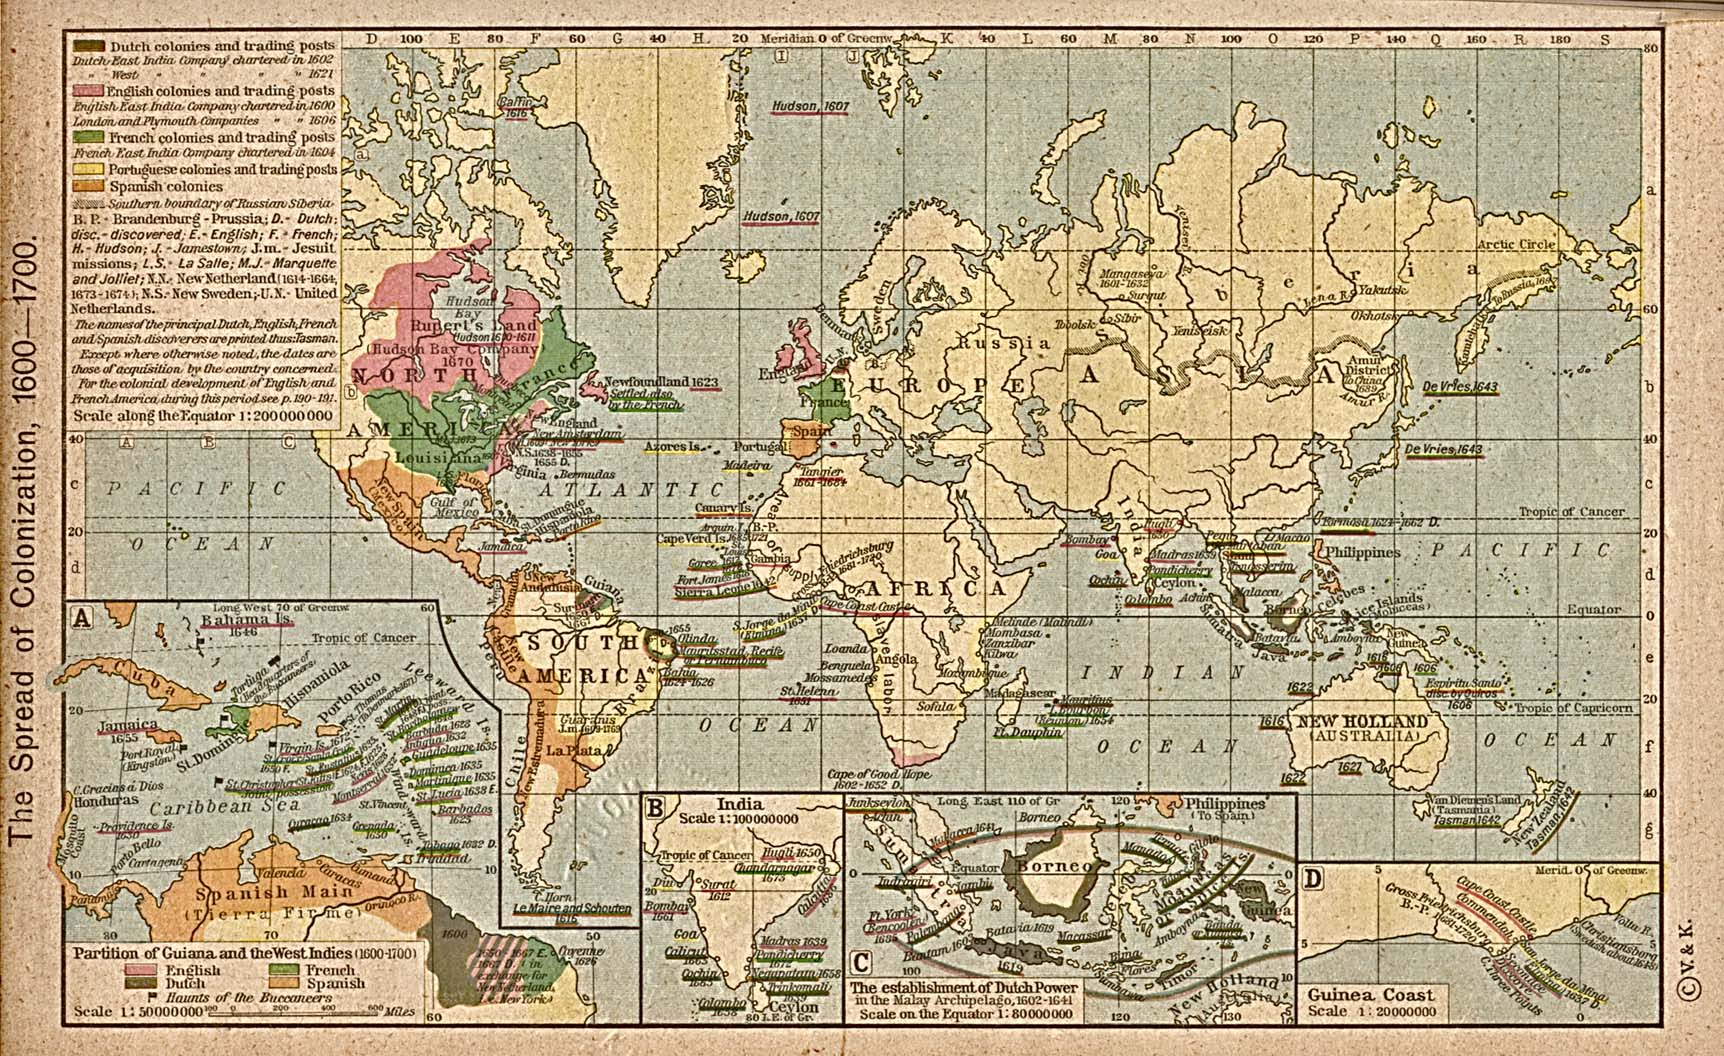 World Colonization Map 1600 1700